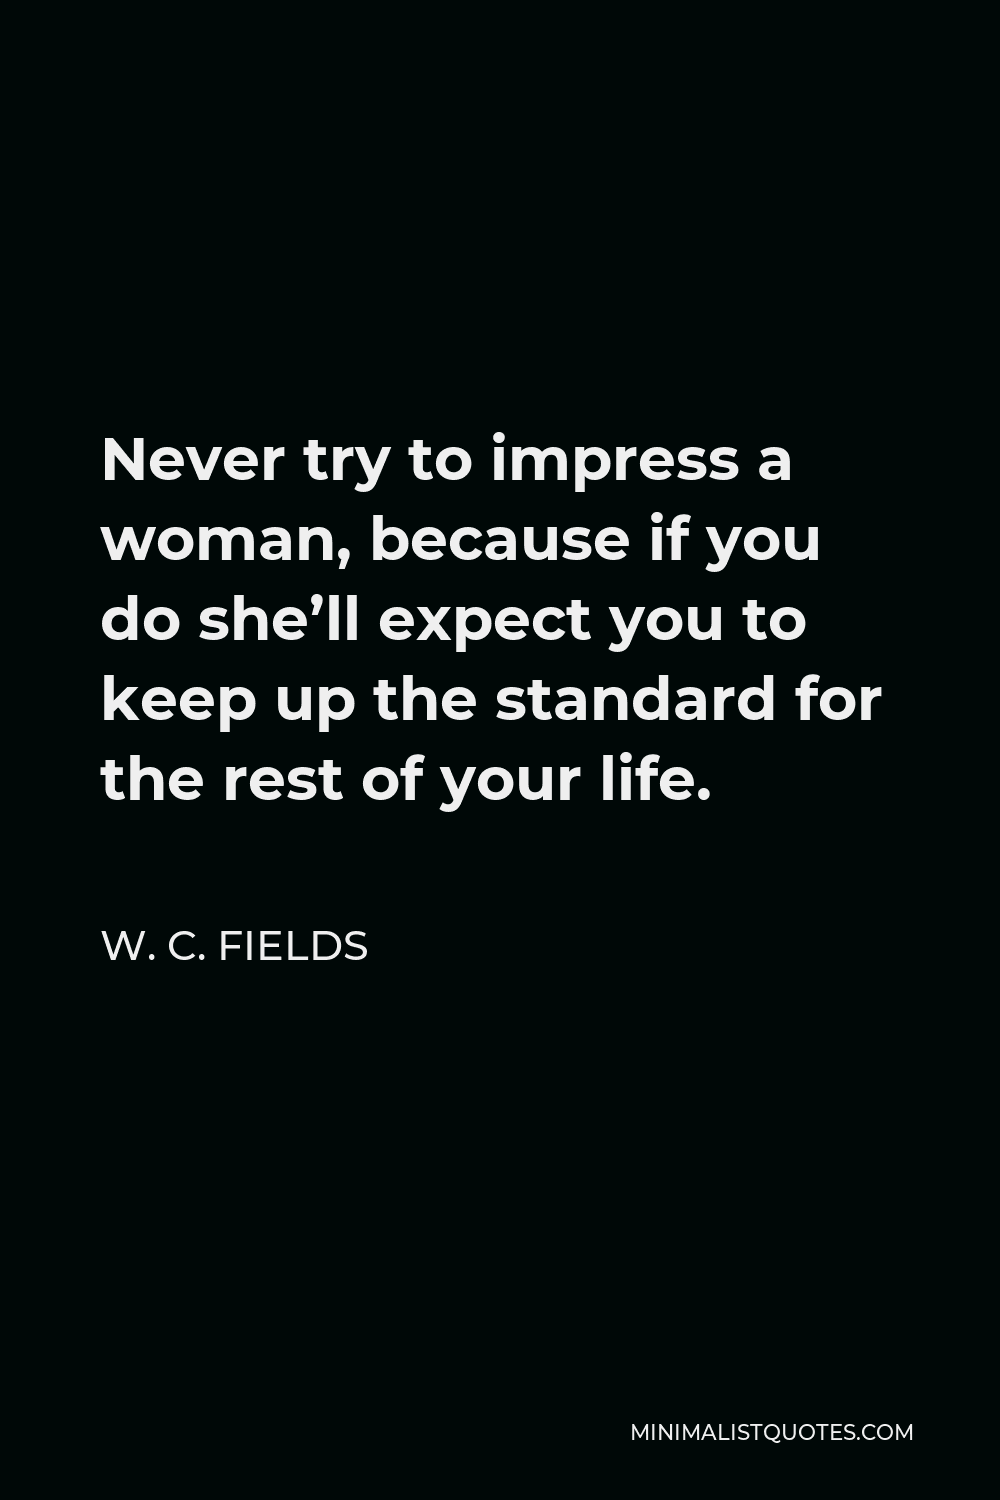 W. C. Fields Quote - Never try to impress a woman, because if you do she'll expect you to keep up the standard for the rest of your life.